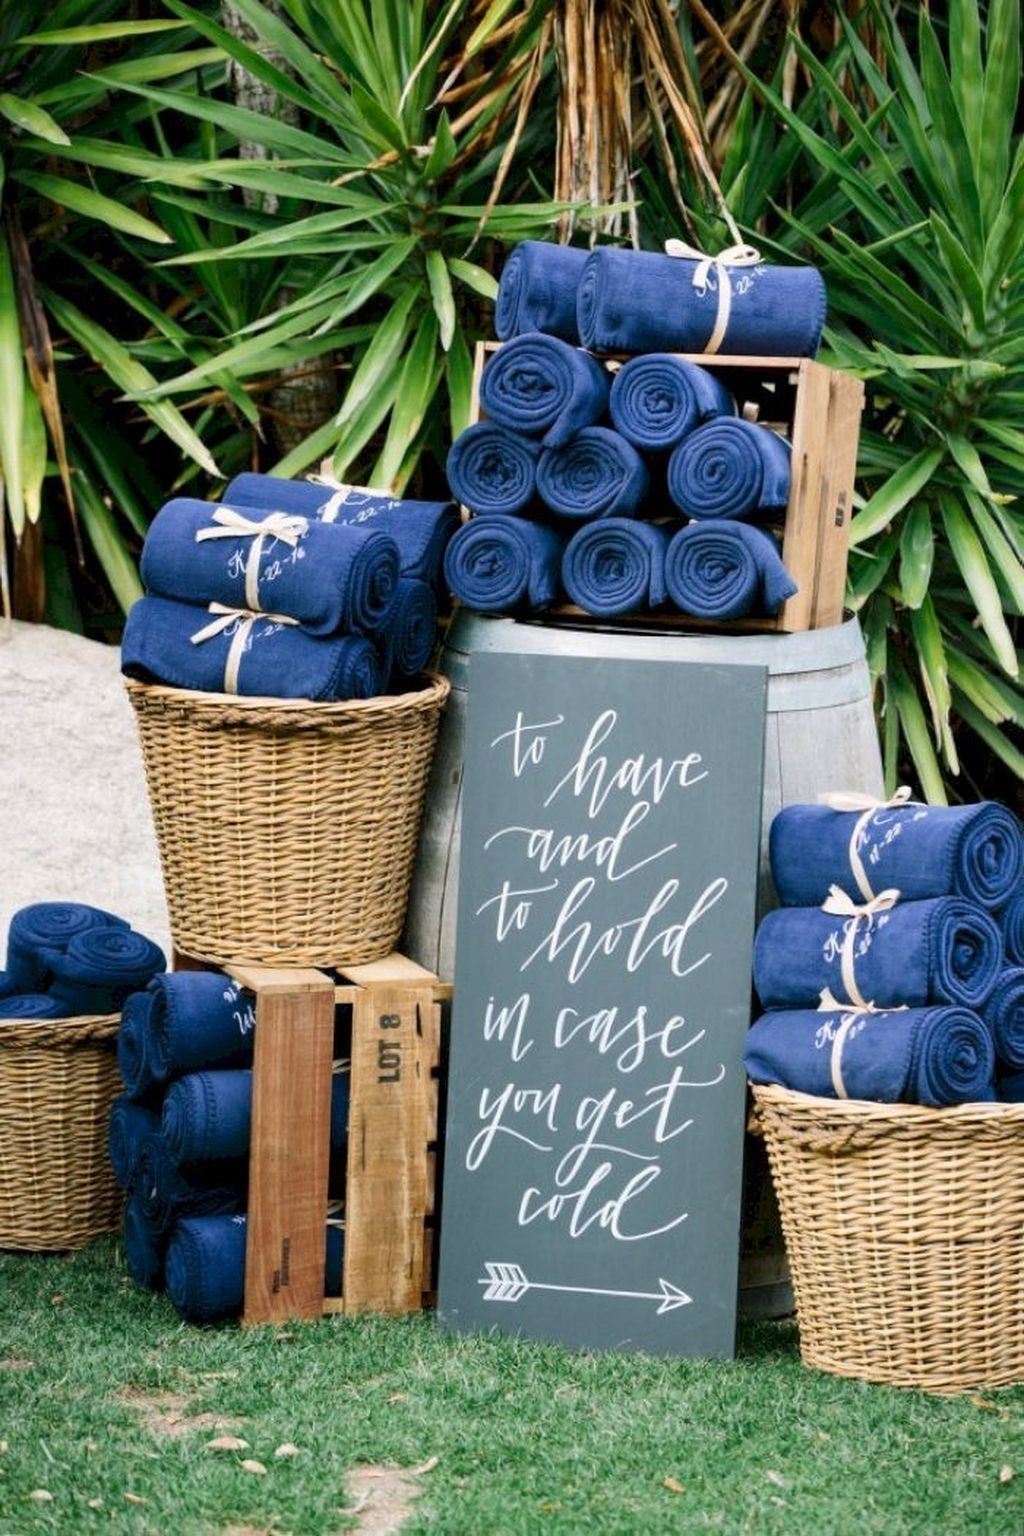 Cool 50 affordable winter wedding decoration ideas on a budget more cool 50 affordable winter wedding decoration ideas on a budget more at https junglespirit Images